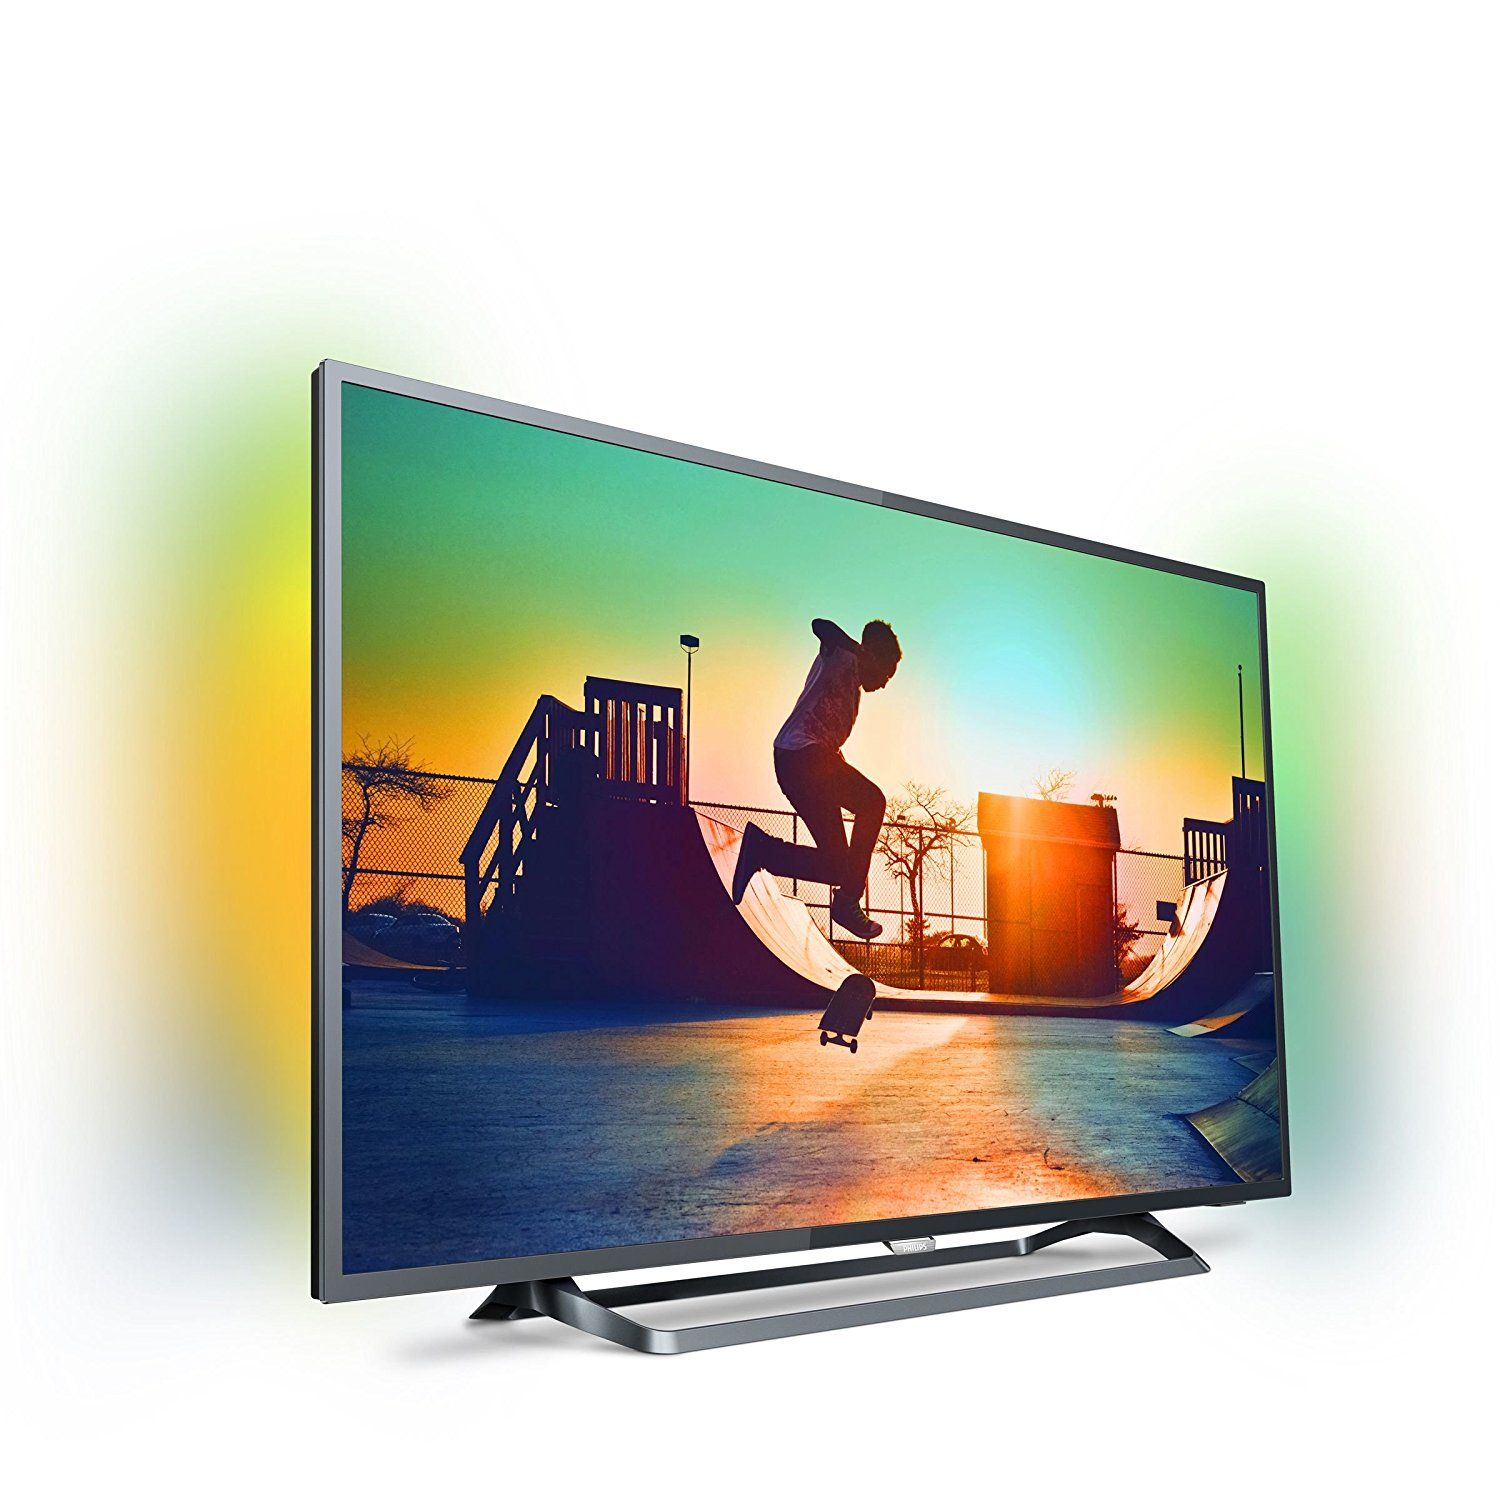 c82129bd9a7 Philips 6000 series Téléviseur LED Smart TV ultra-plat 4K 55PUS6262 12  écran LED